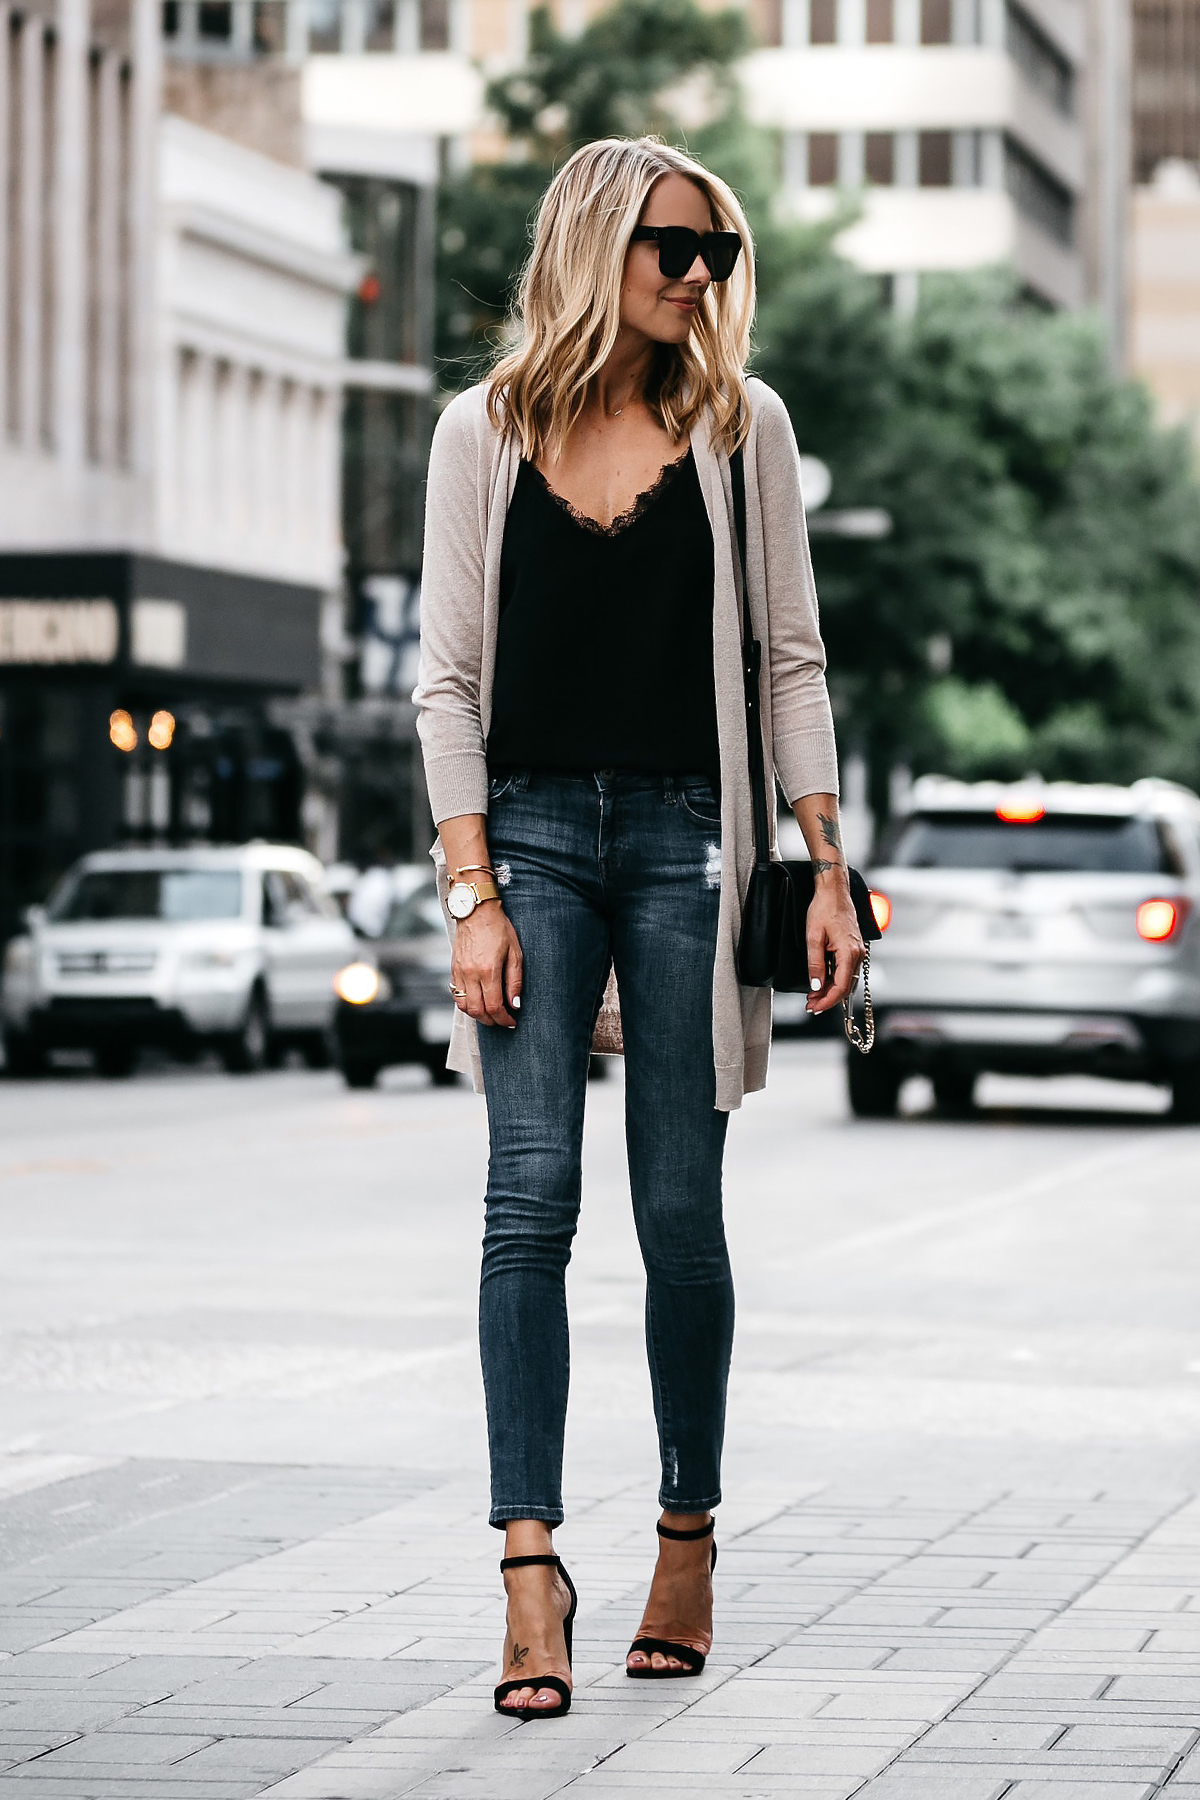 Blonde Woman Wearing Long Tan Cardigan Black Lace Cami Denim Skinny Jeans Outfit Black Ankle Strap Heeled Sandals Fashion Jackson Dallas Blogger Fashion Blogger